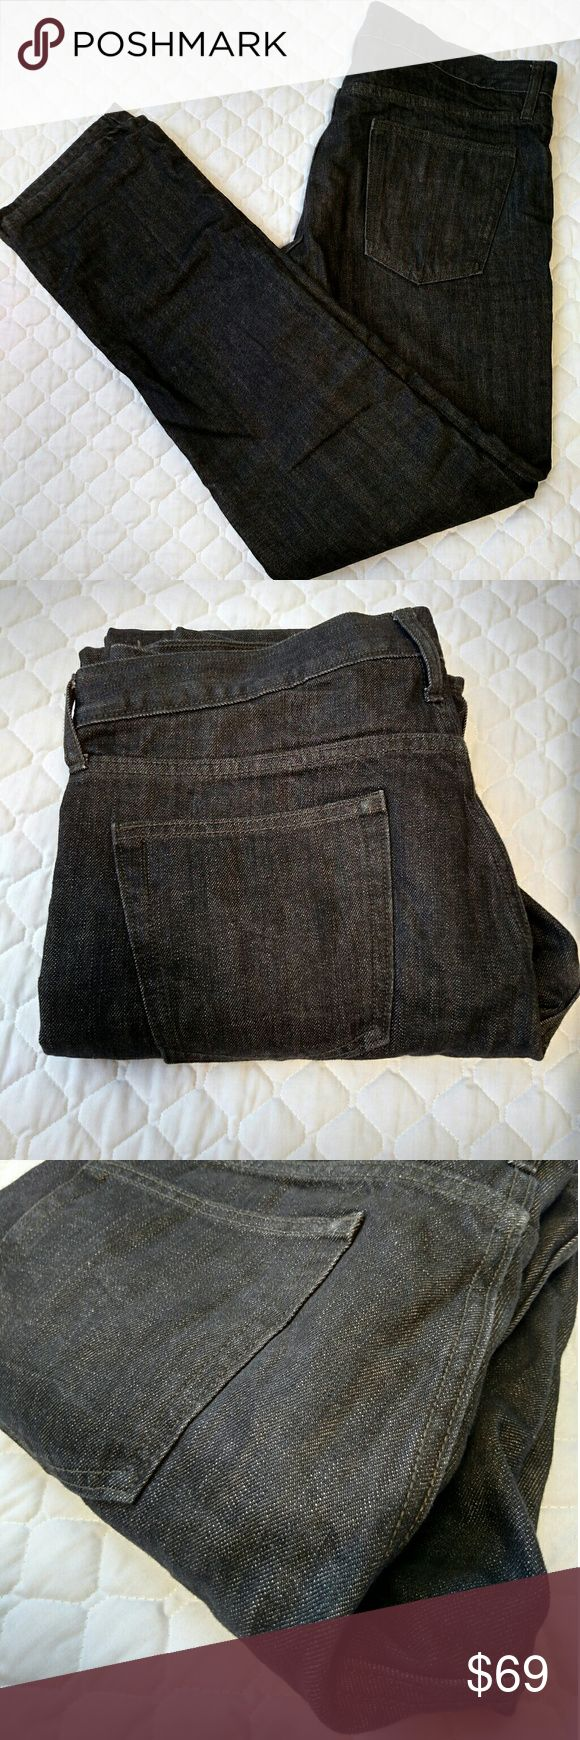 Old Navy flannel lined black jeans 34 NWOT very black flannel lined jeans.  Awesome jeans for cold camp trips or winter time.  Please go up a size since the jeans will fit snug, such as: if you usually wear 33, these should be good! Old Navy Jeans Straight